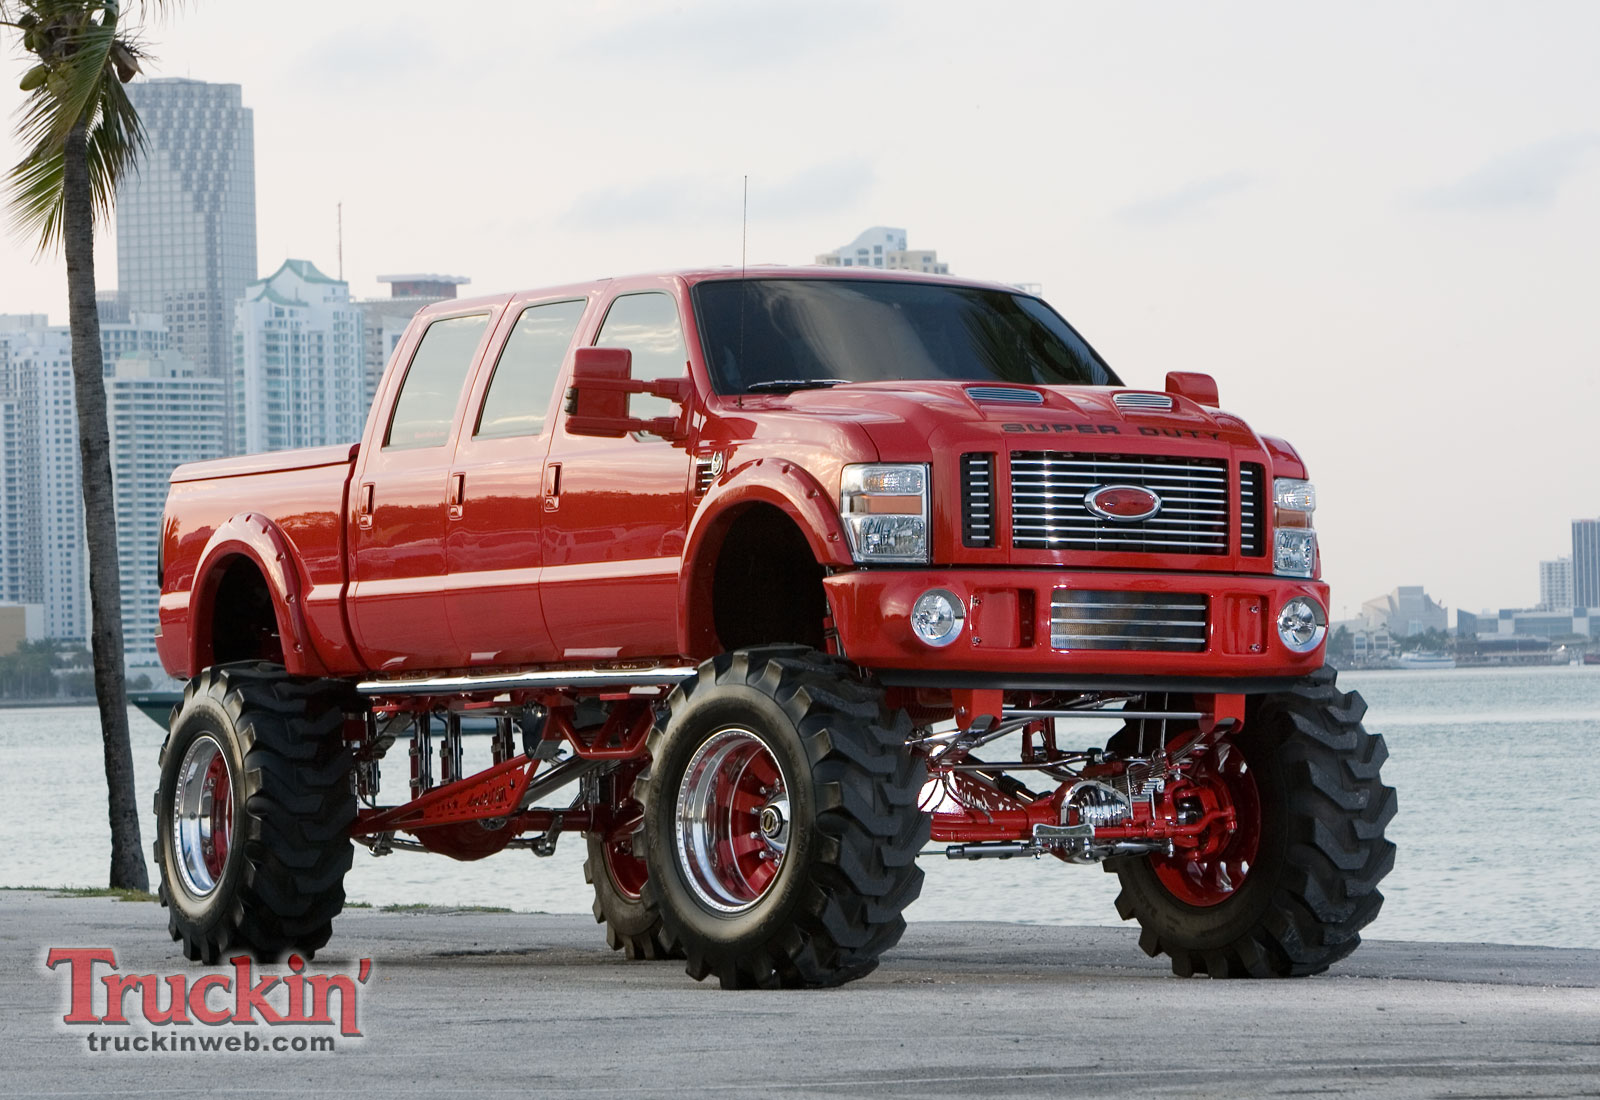 Top 10 Trucks Of 2010 2005 Ford F250